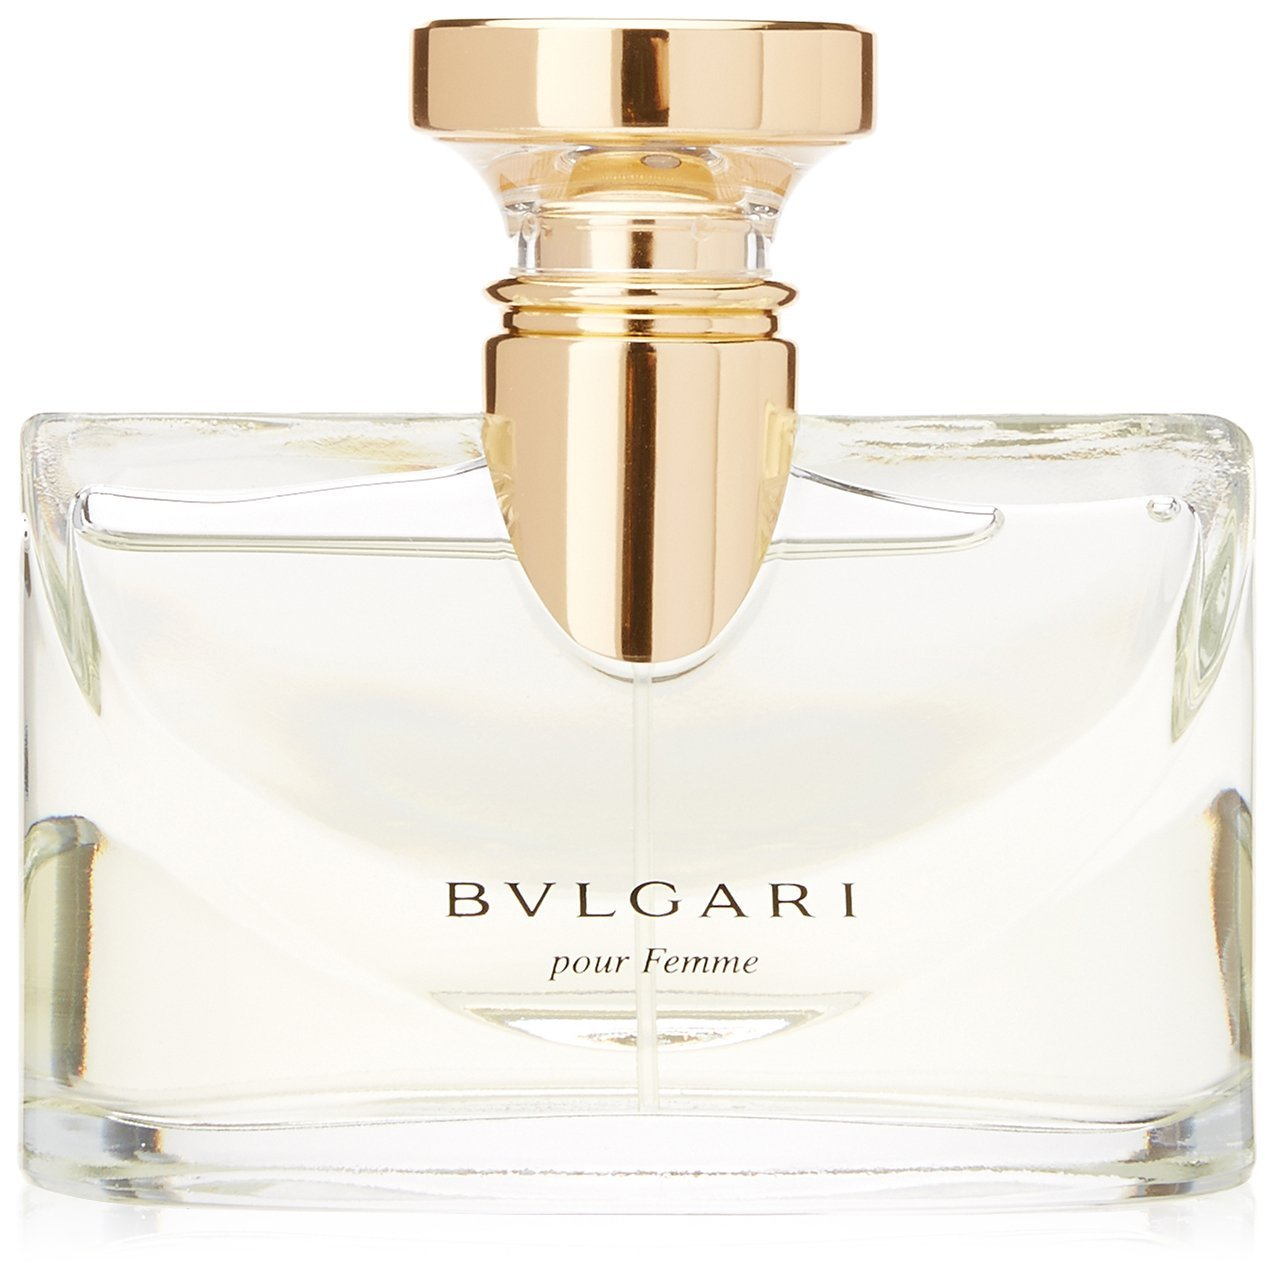 Amazon.com : Bvlgari By Bvlgari For Men Eau-de-toilette Spray, 3.4 Ounce : Beauty